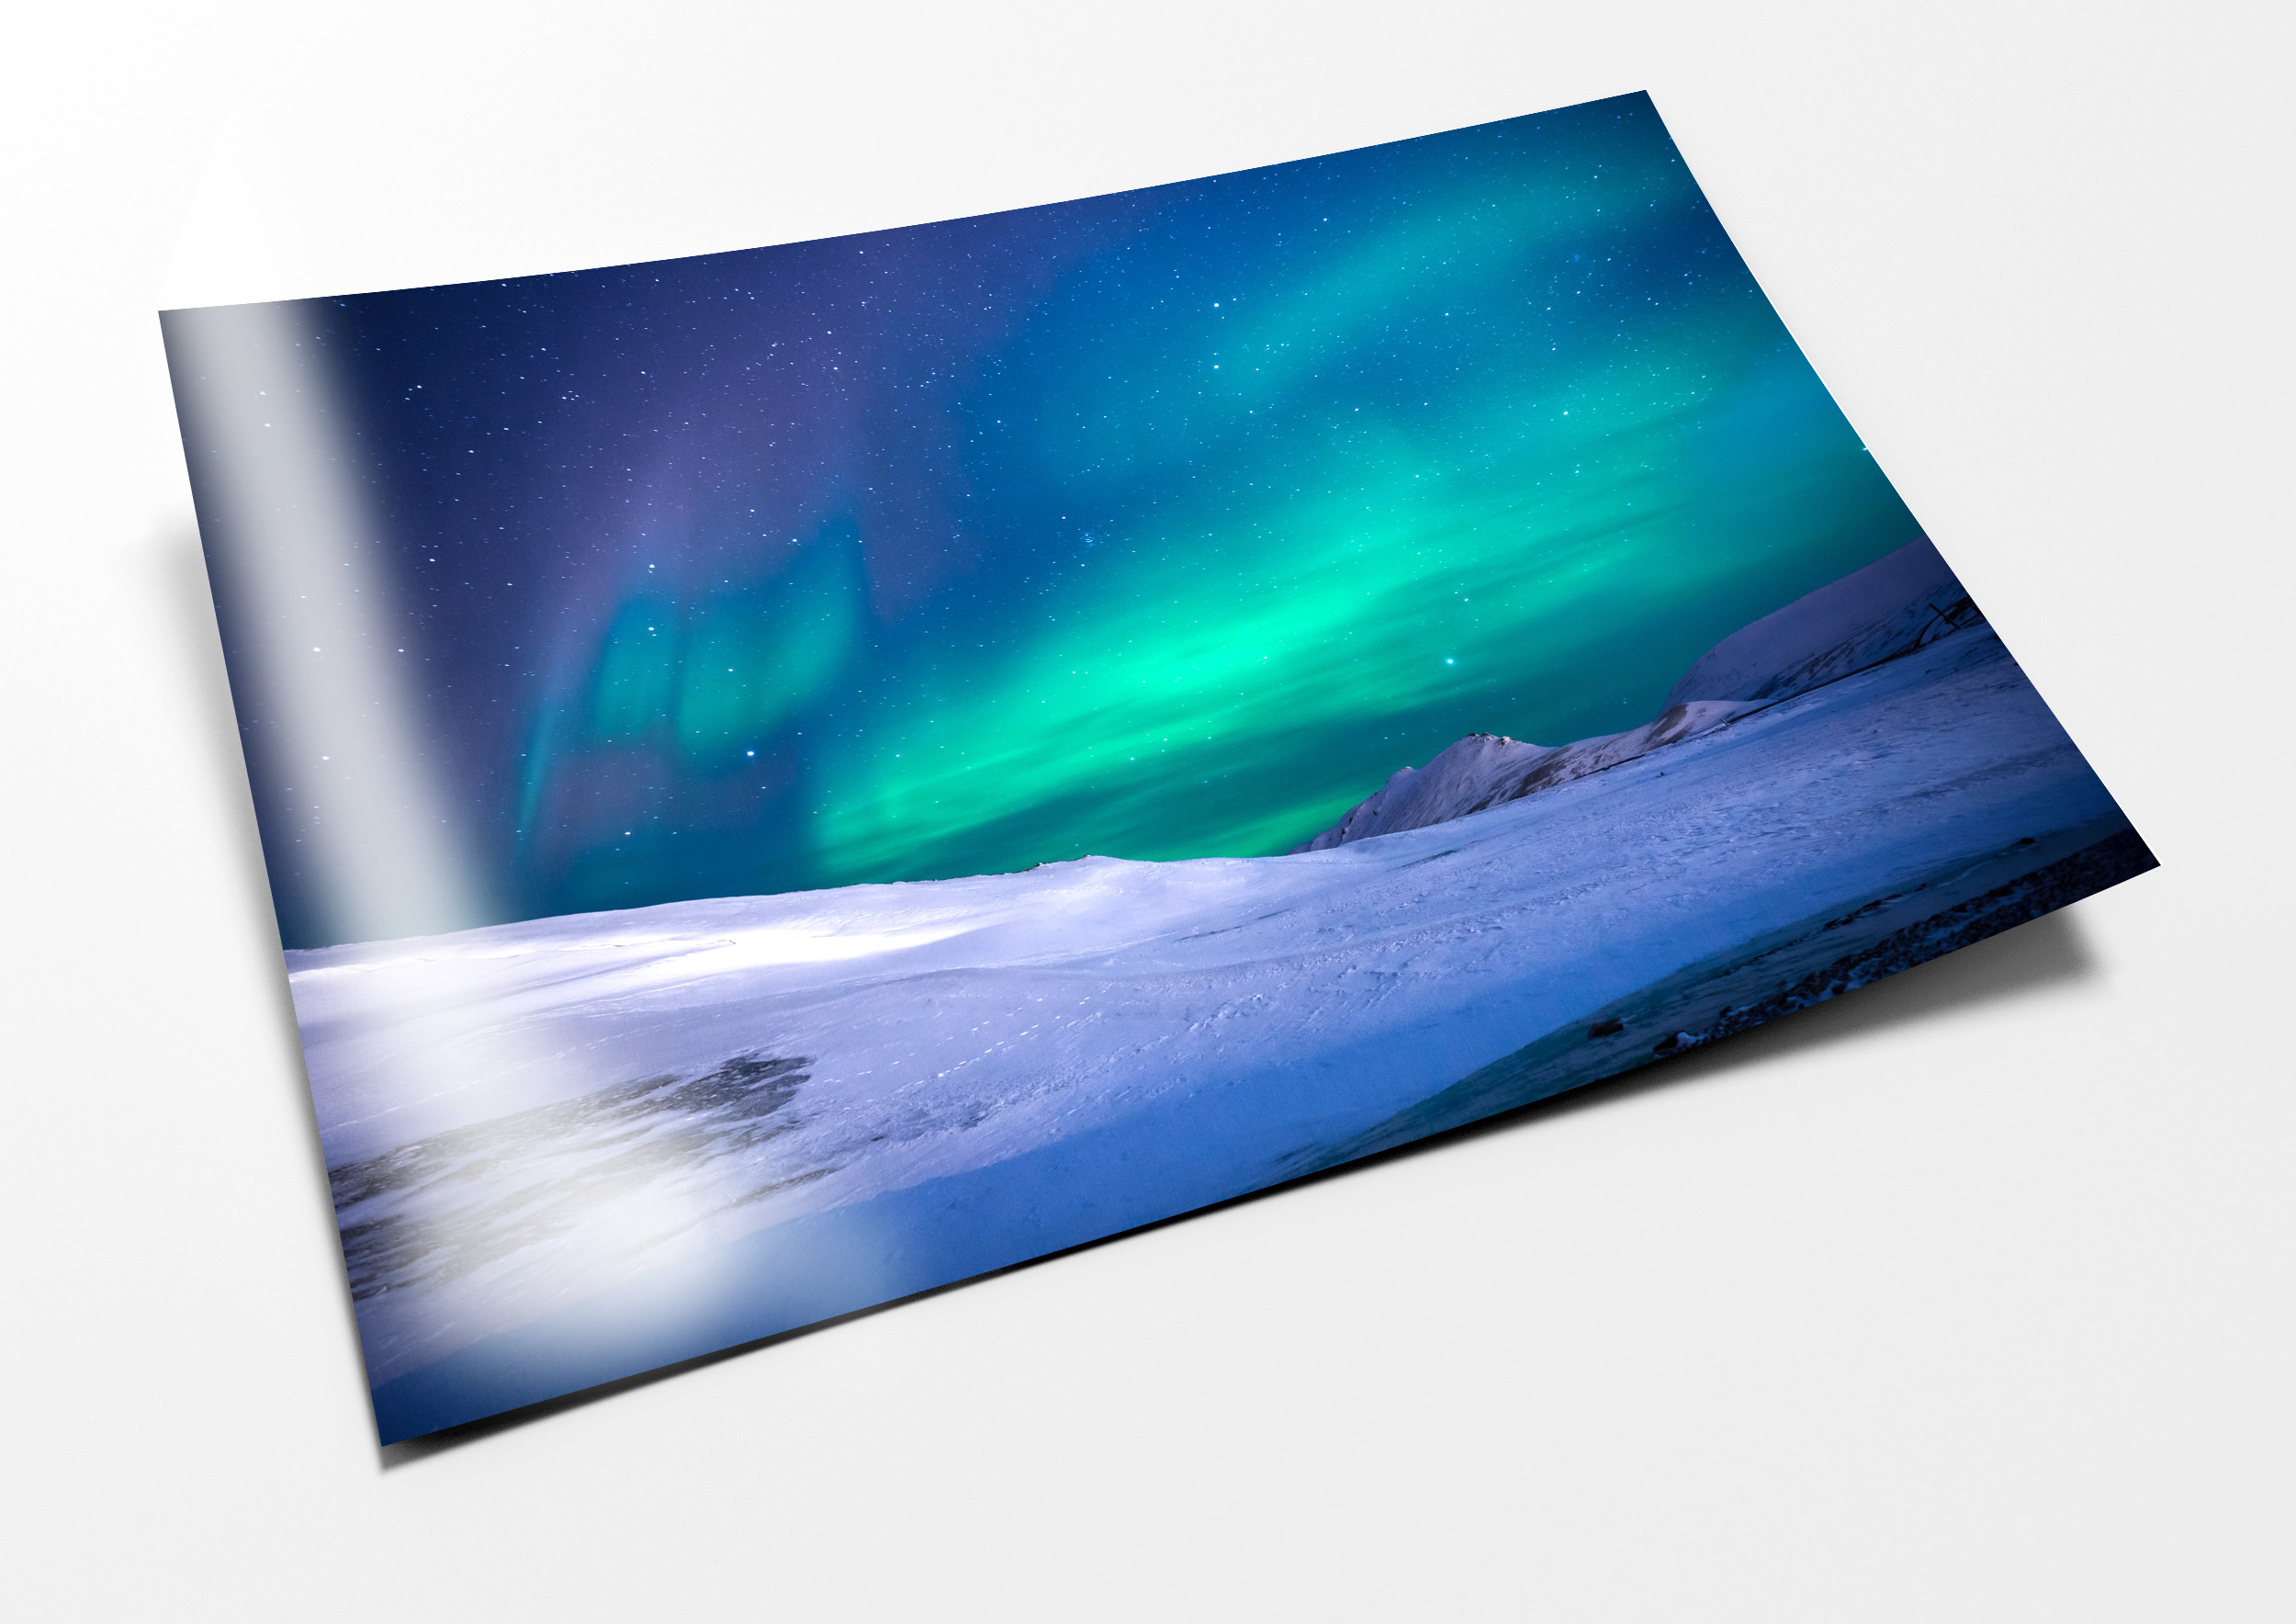 PREMIUM SERIES | FUJIFLEX CRYSTAL ARCHIVE ACRYLIC FINE ART PRINTS | ADORN YOUR WALL